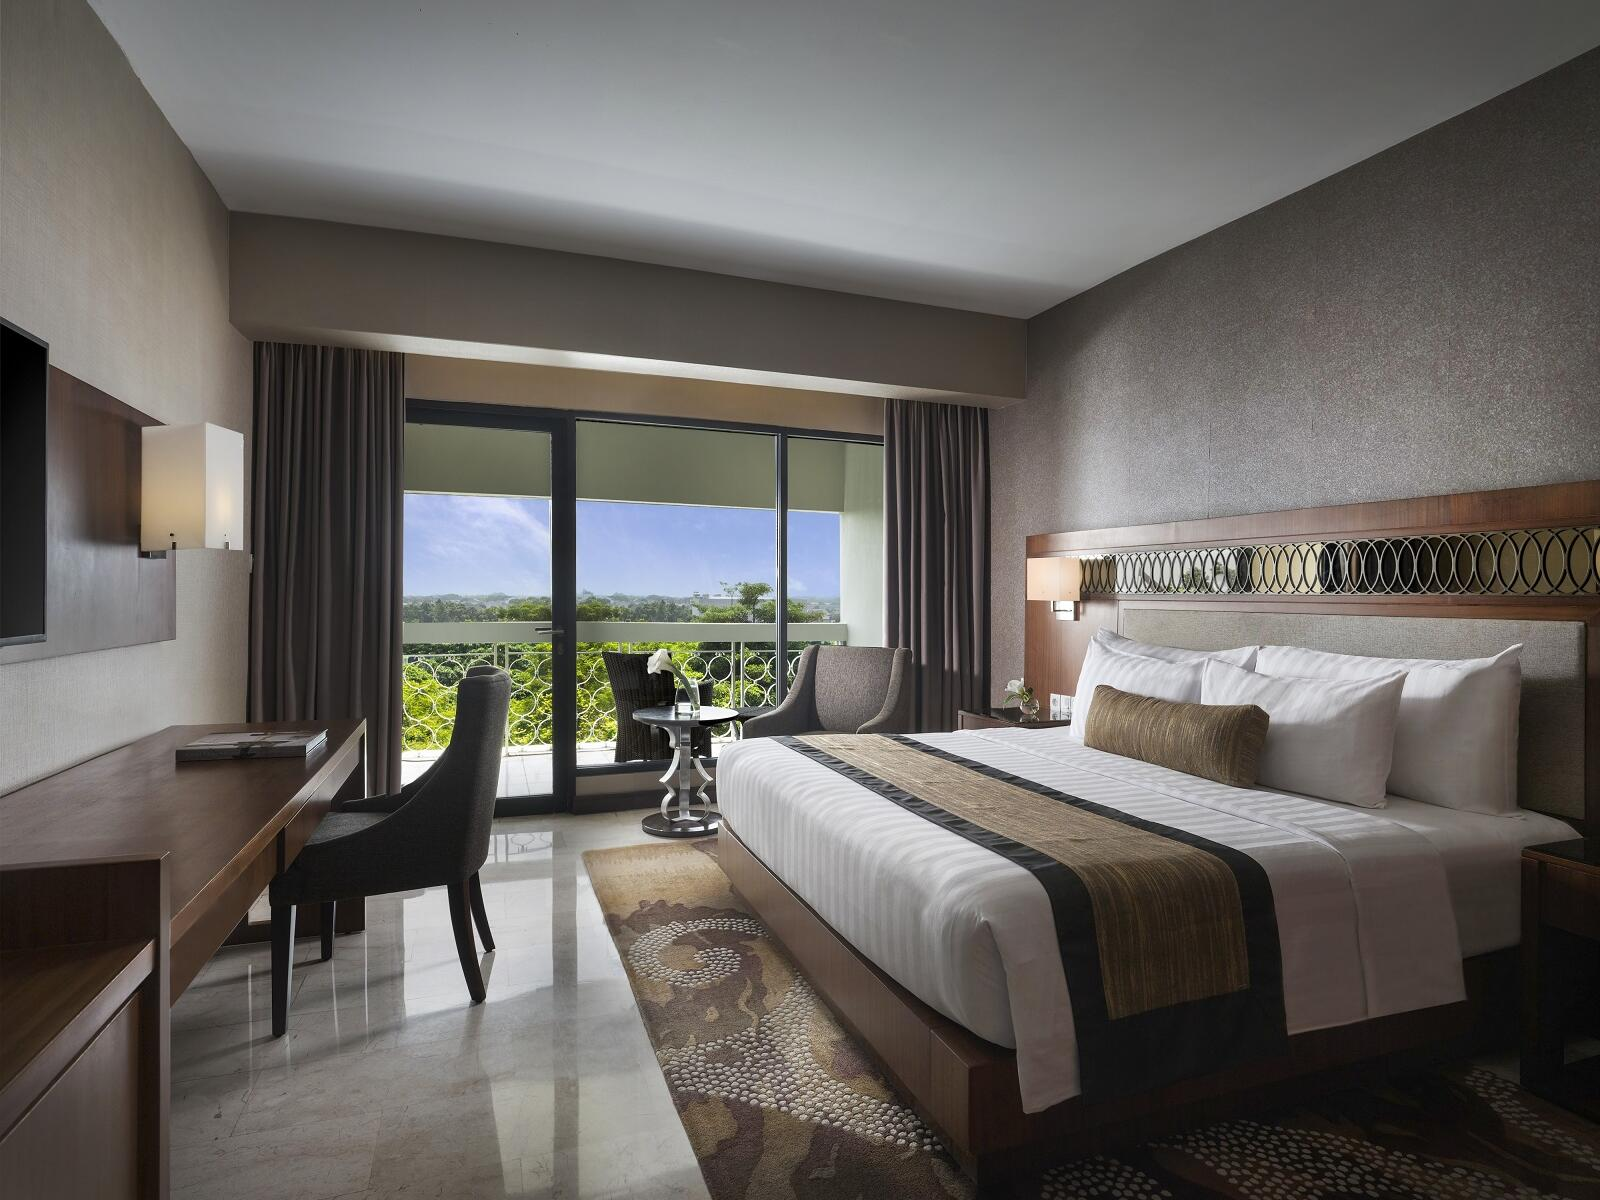 The Deluxe Room with one king bed and view in Royal Ambarrukmo Yogyyakarta